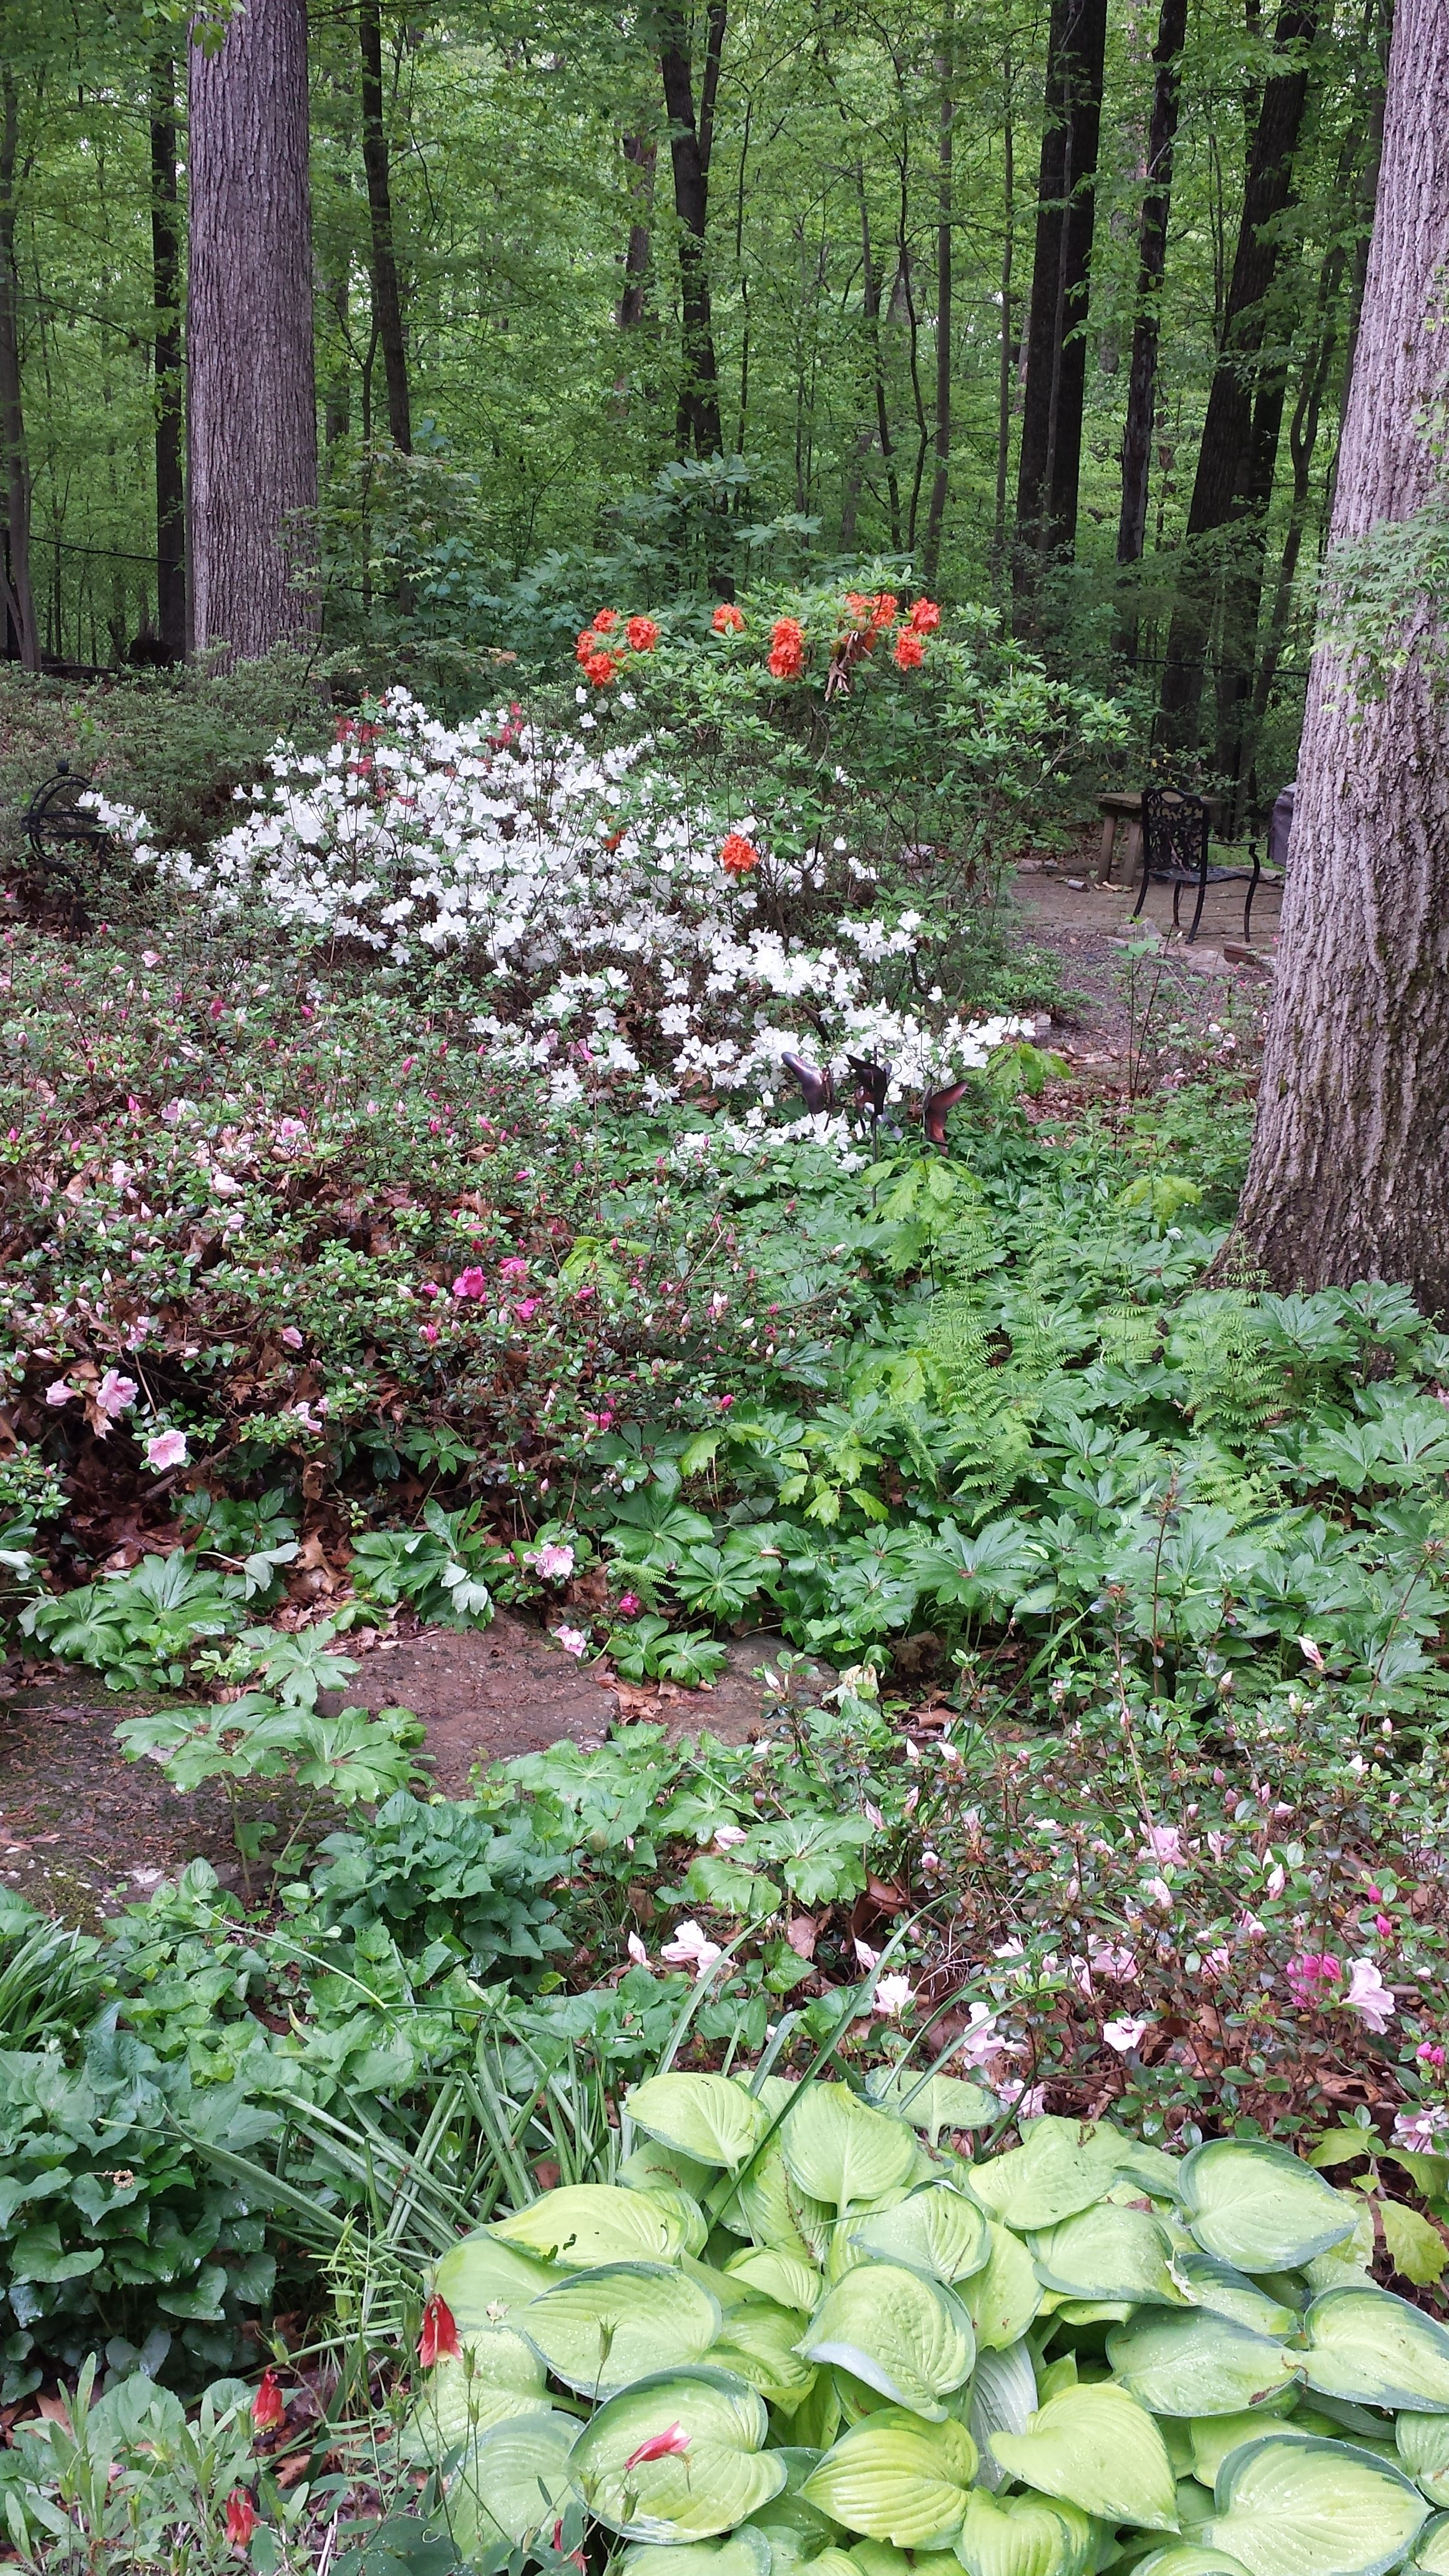 White Azaleas were gorgeous this year